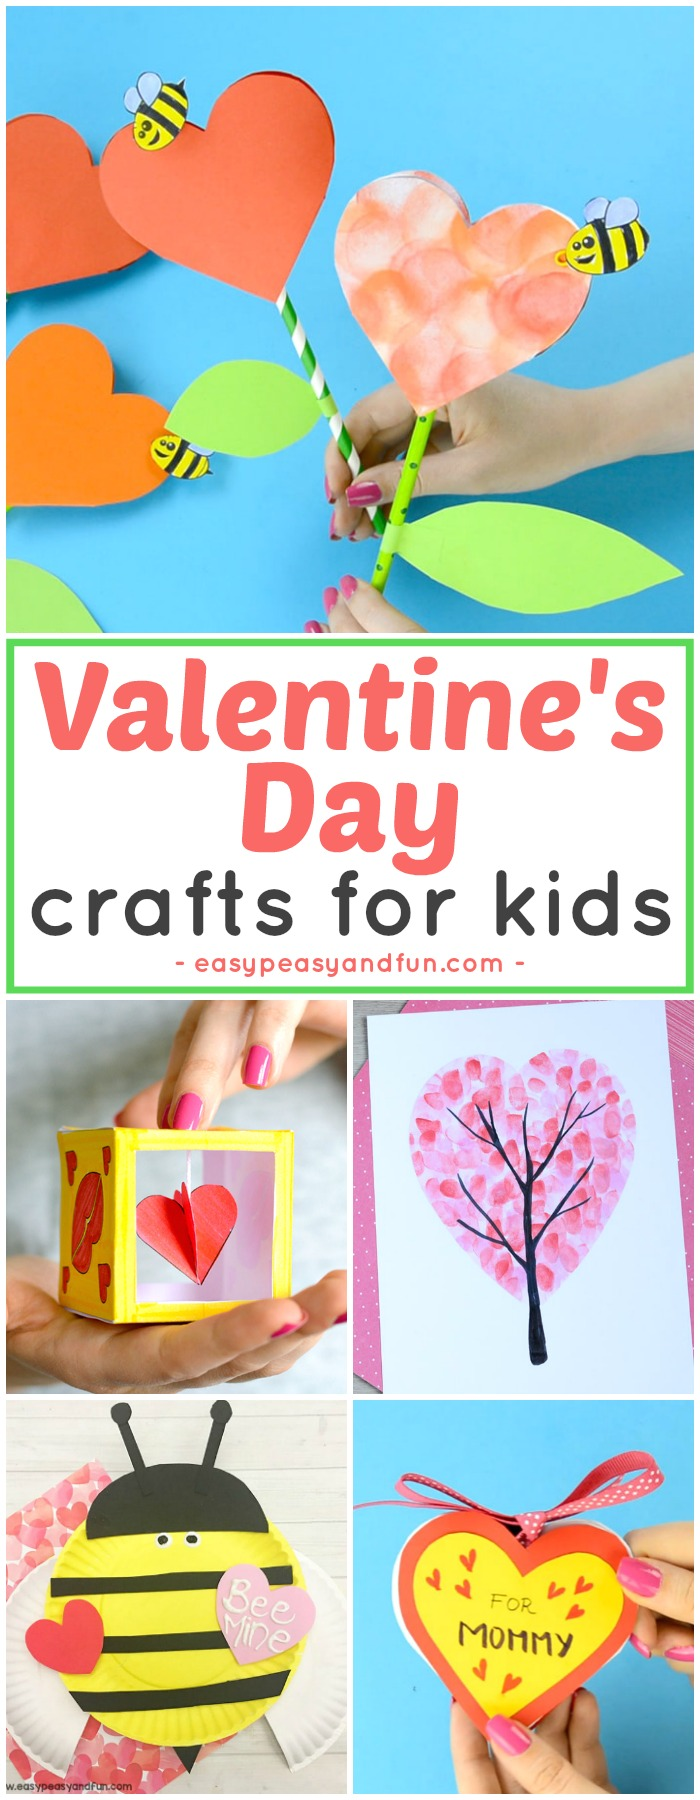 Valentines day crafts for kids art and craft ideas for for Valentines day ideas seattle